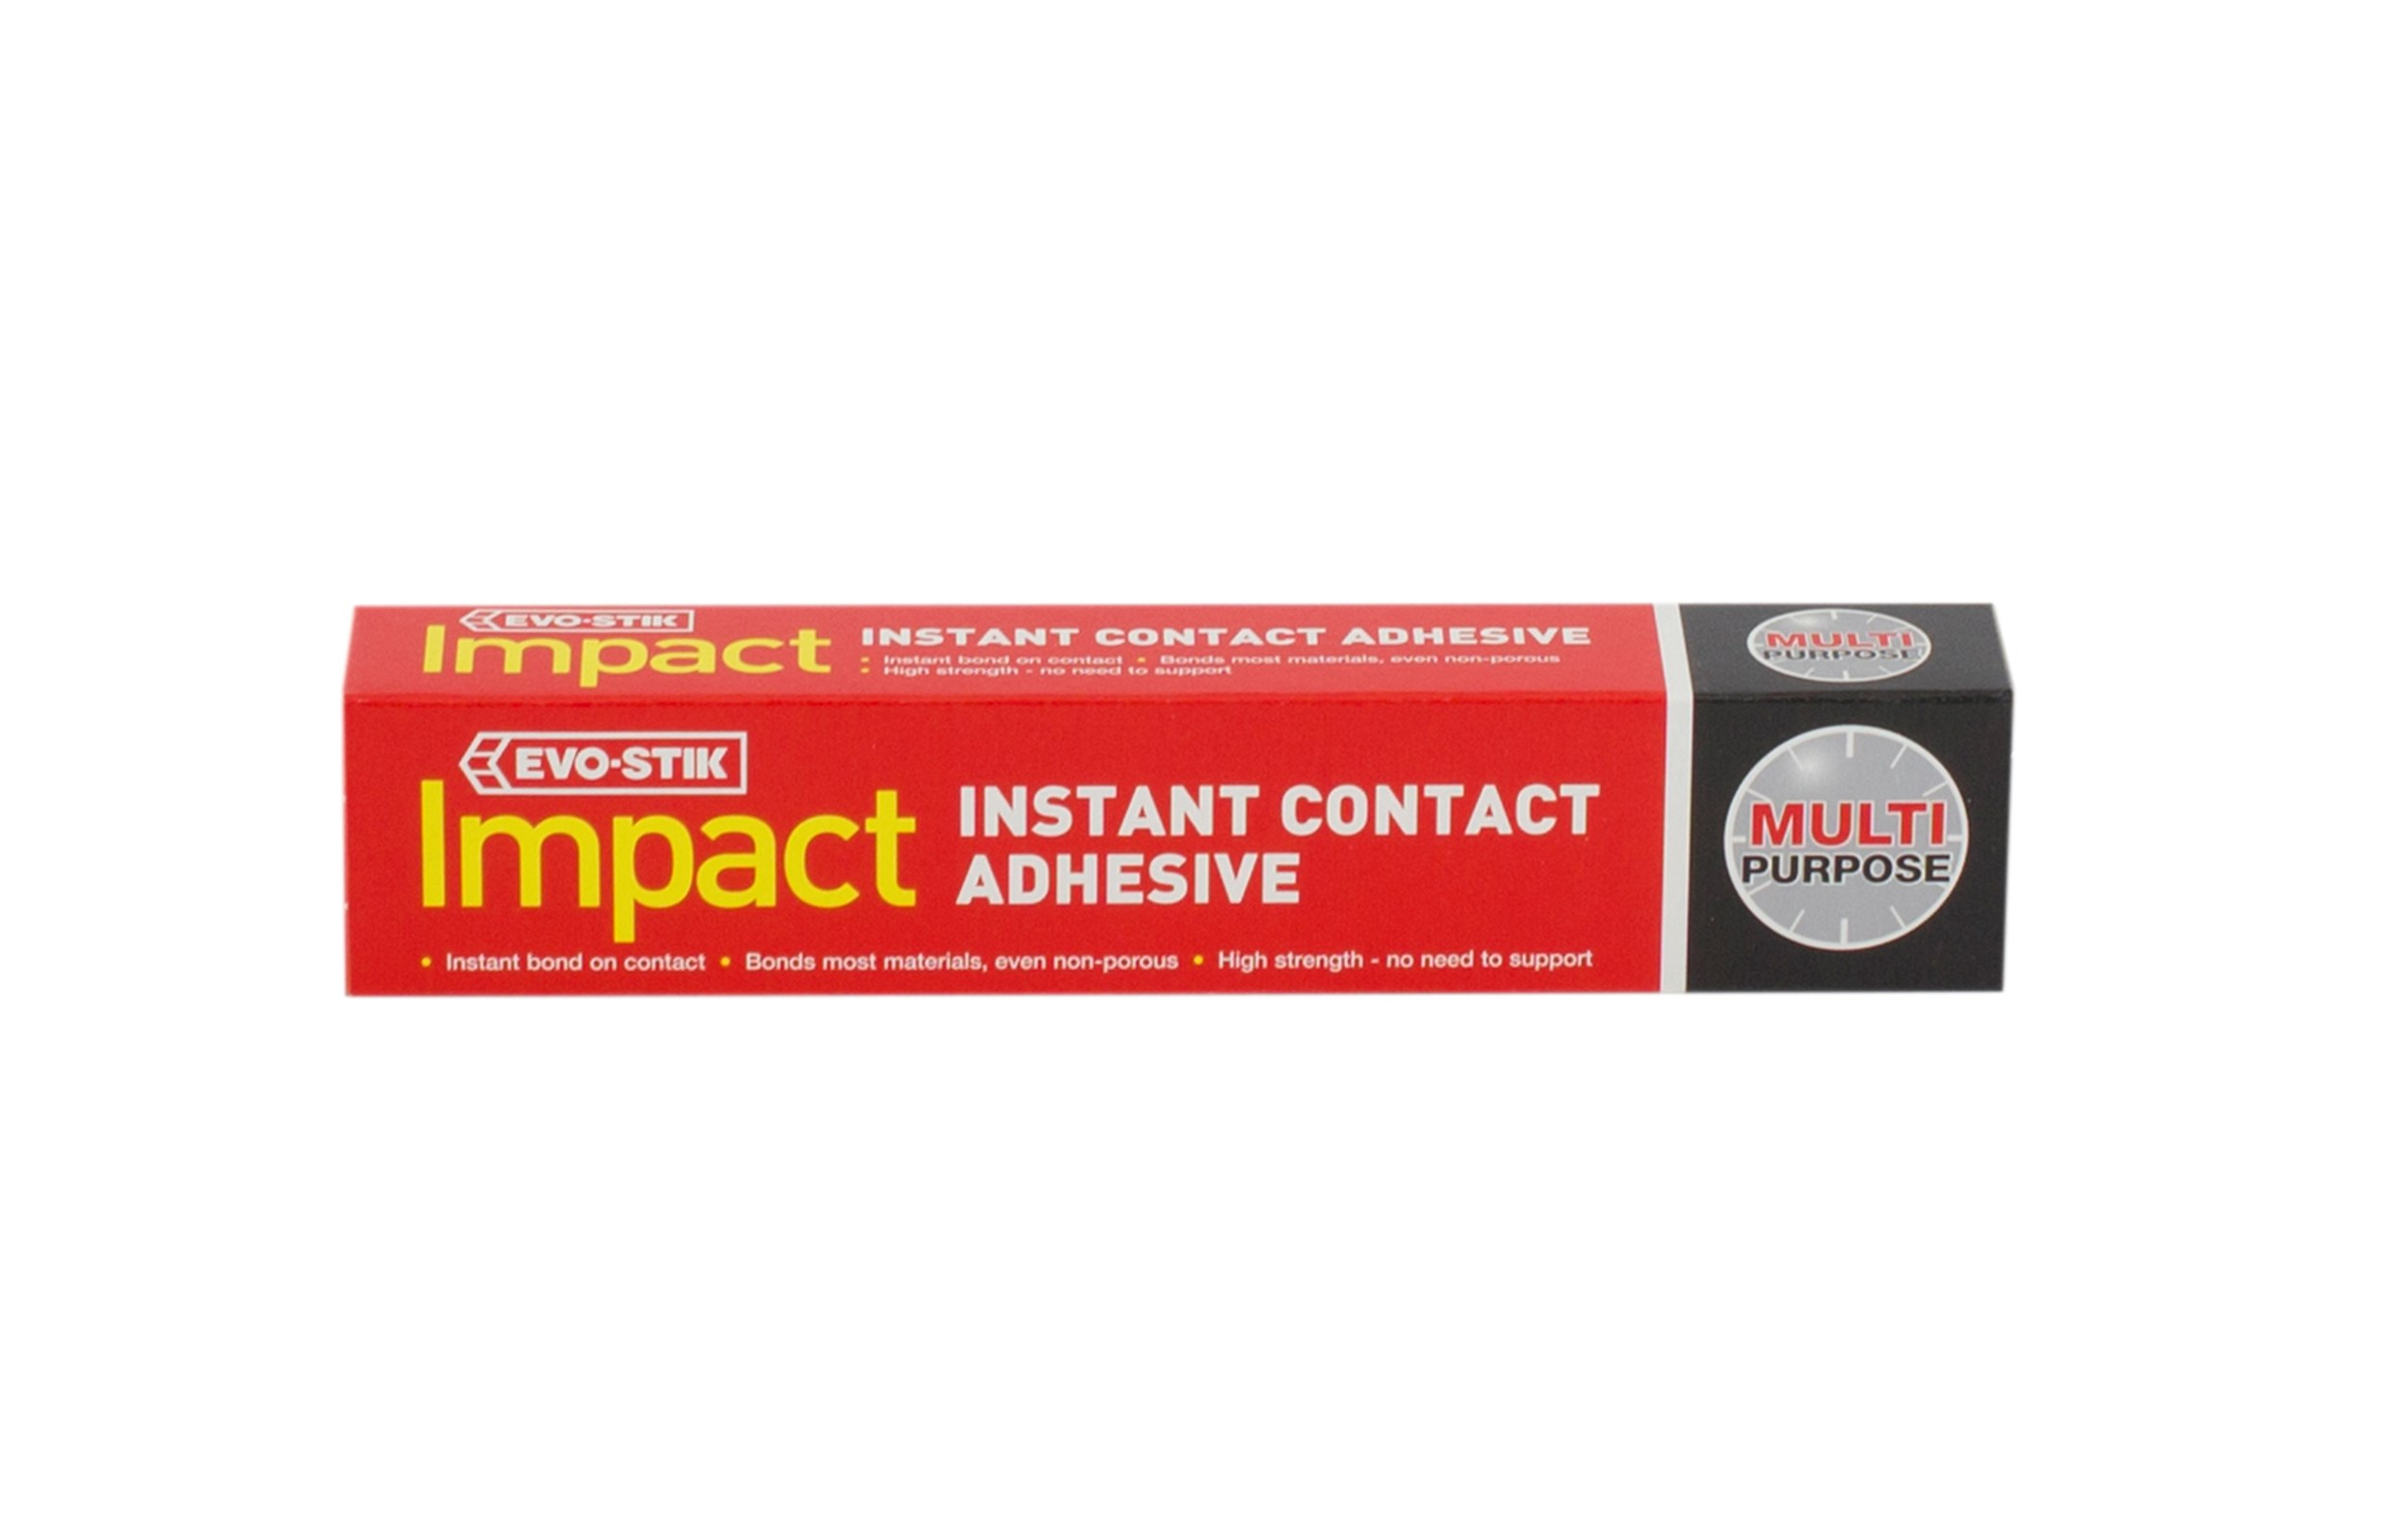 evo stik multi purpose impact instant contact adhesive g  evo stik multi purpose impact instant contact adhesive 30g adhesives ie